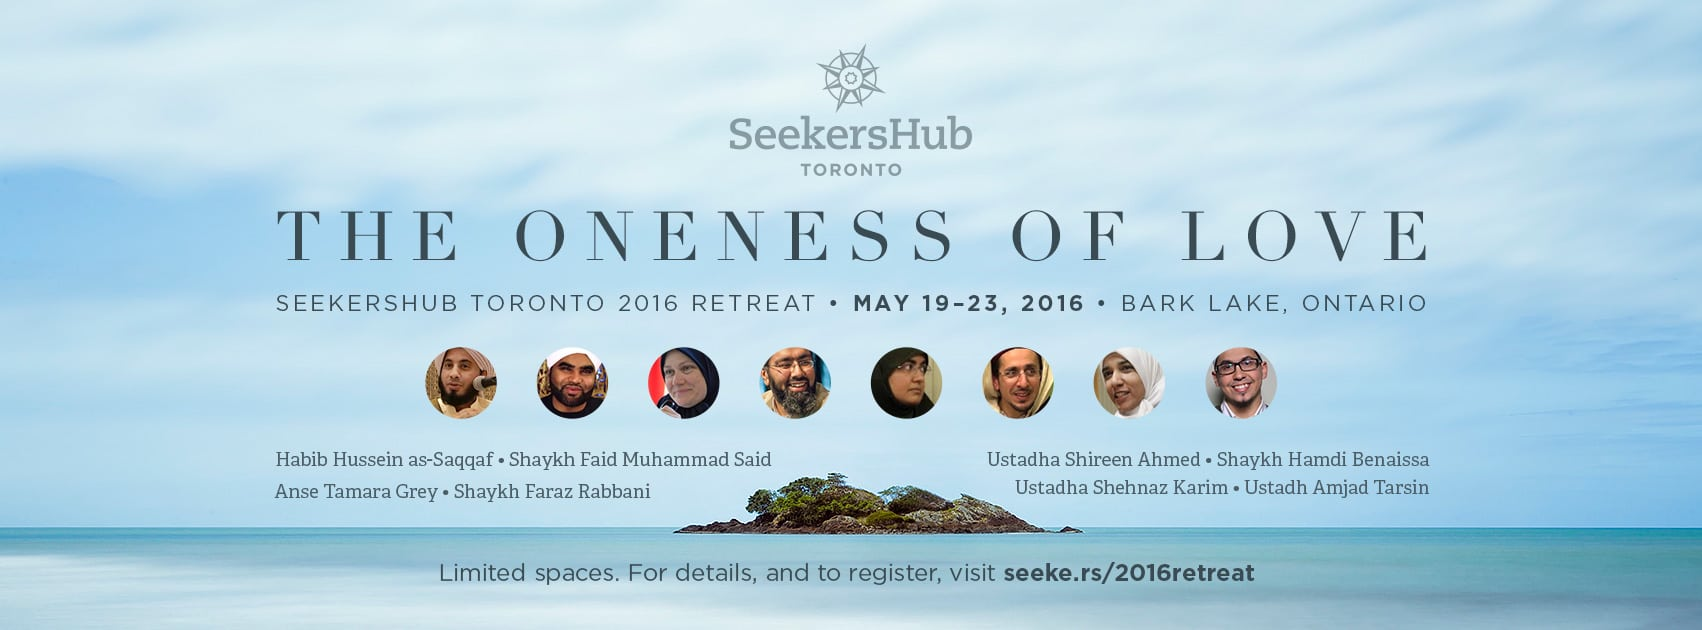 SH_Toronto_2016_Retreat_FB_Cover_v0.10_2016-01-21